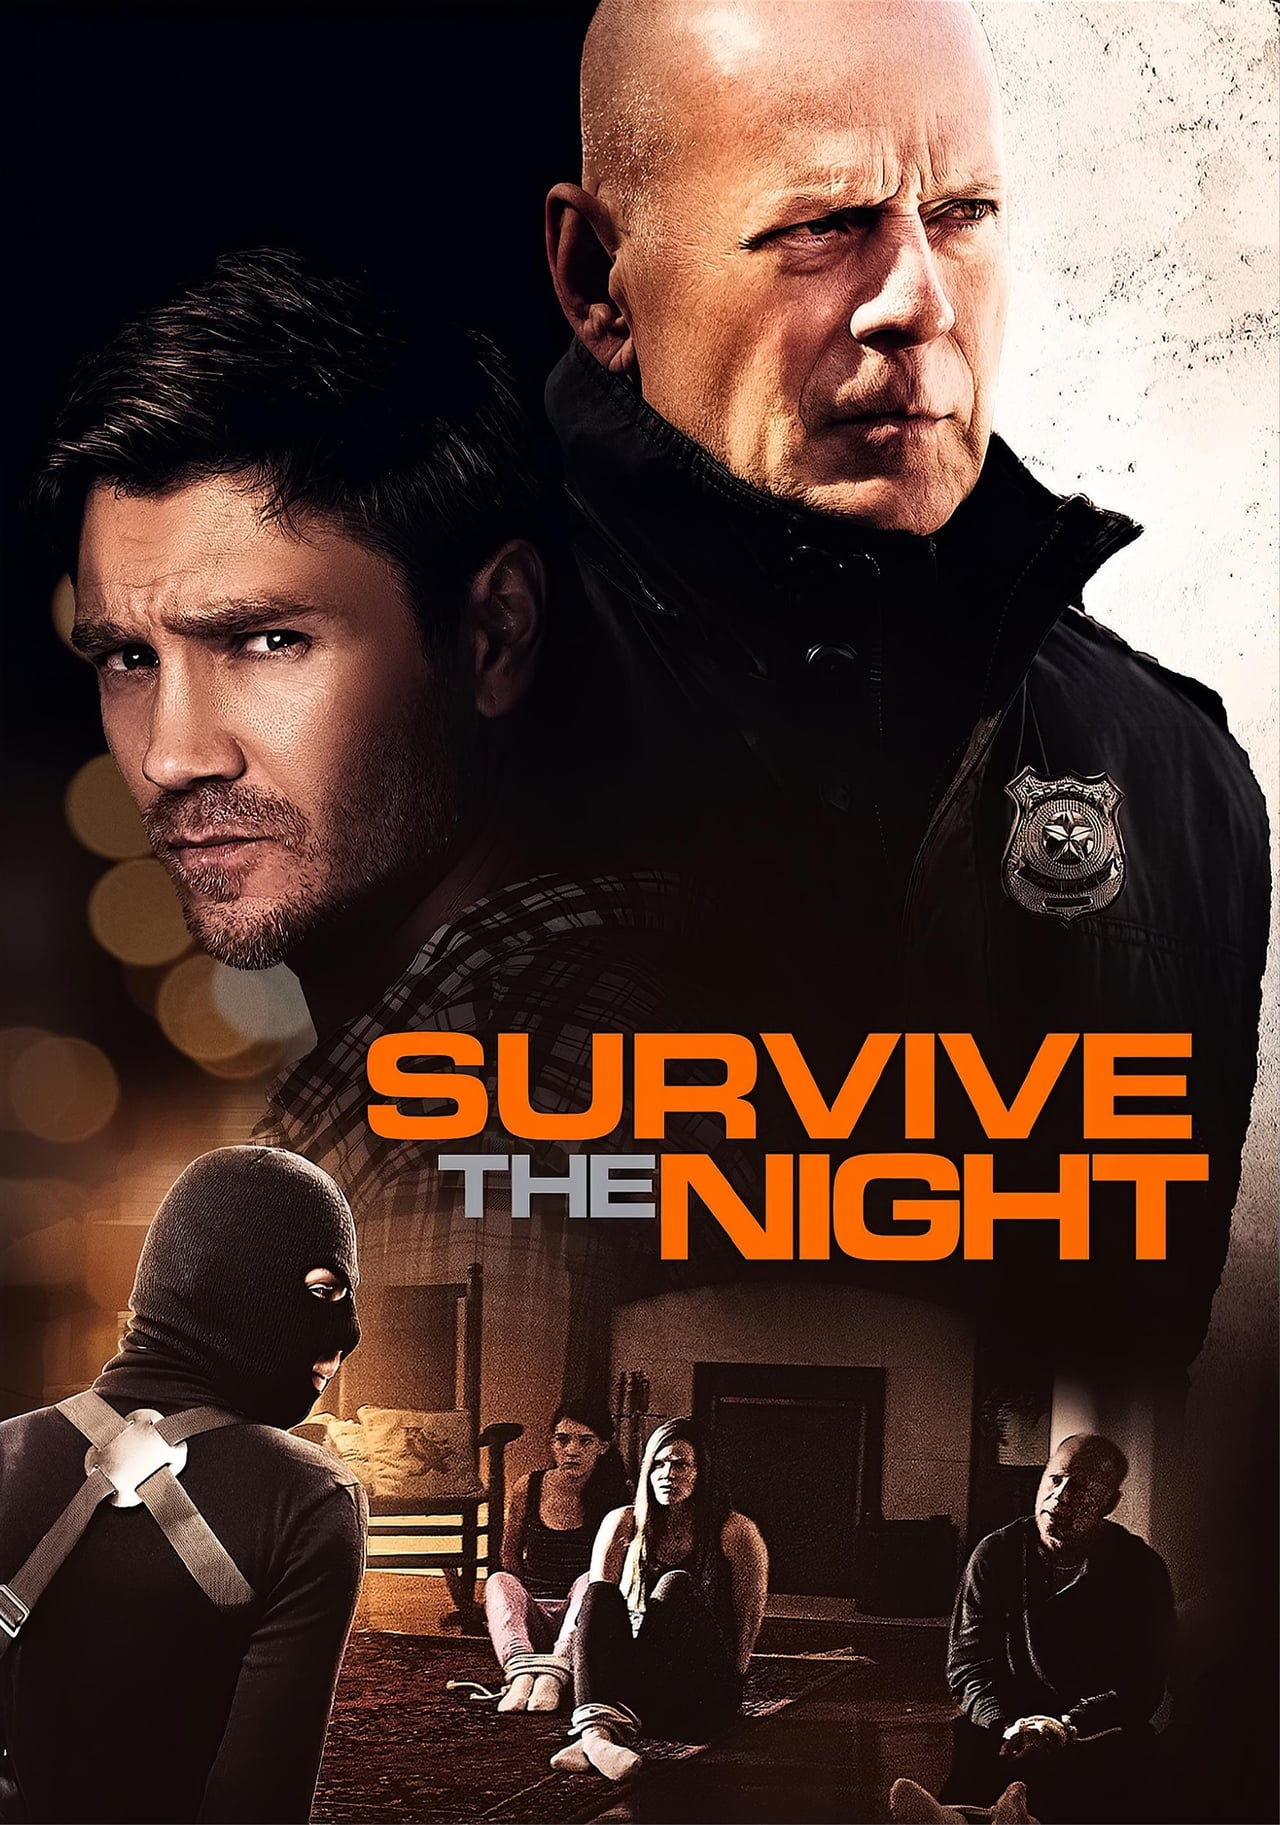 [Review] SURVIVE THE NIGHT Finds Bruce Willis in a Deadly If Not Familiar Home Invasion Thriller